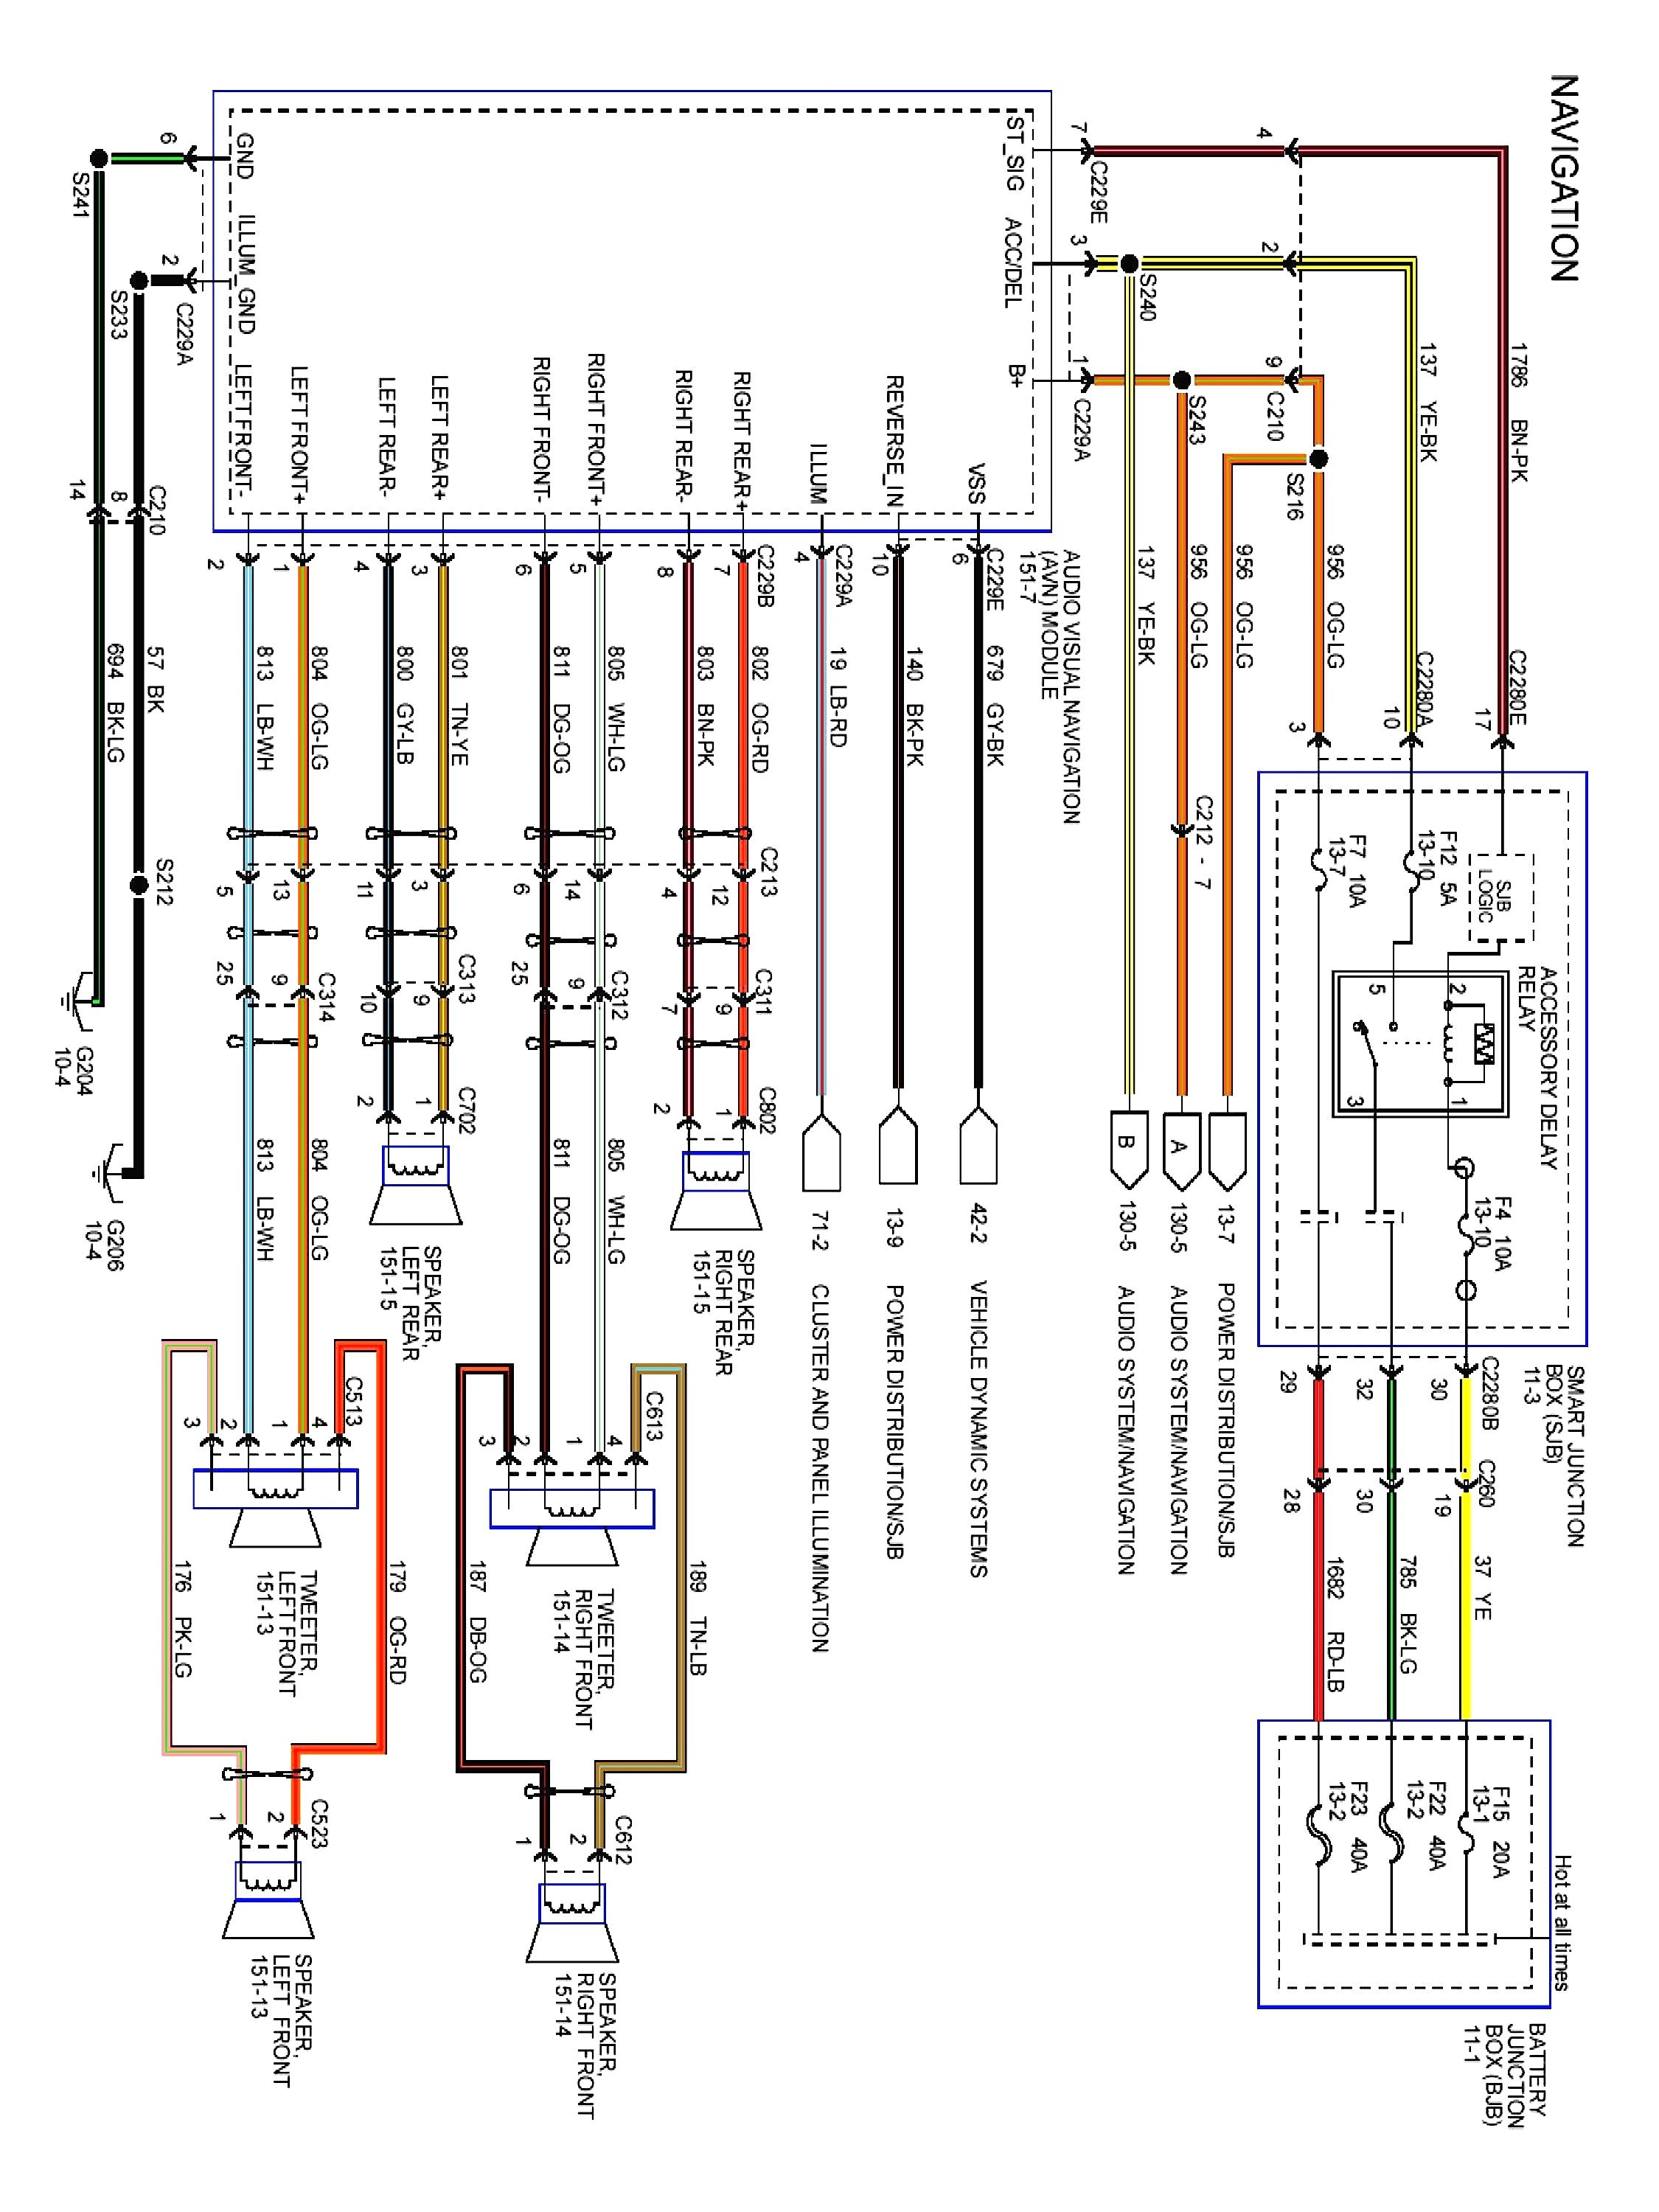 Edge Radio Wiring Illumination 2010 - Go Wiring Diagram - Dual Radio Wiring Diagram